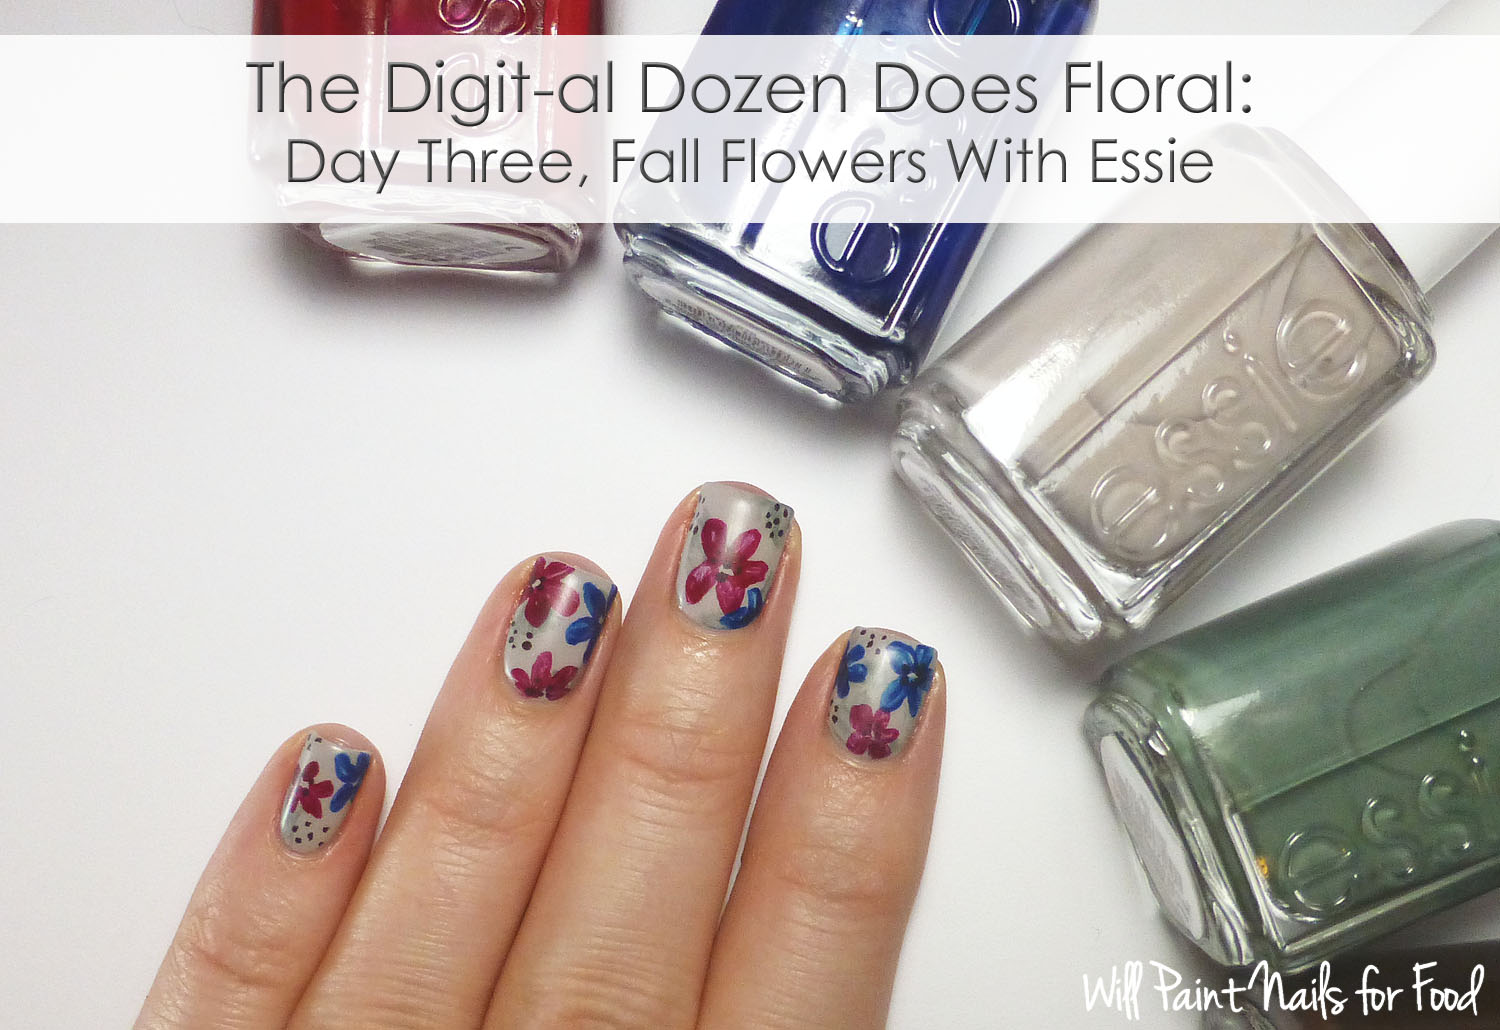 Essie Fall 2014 flowers